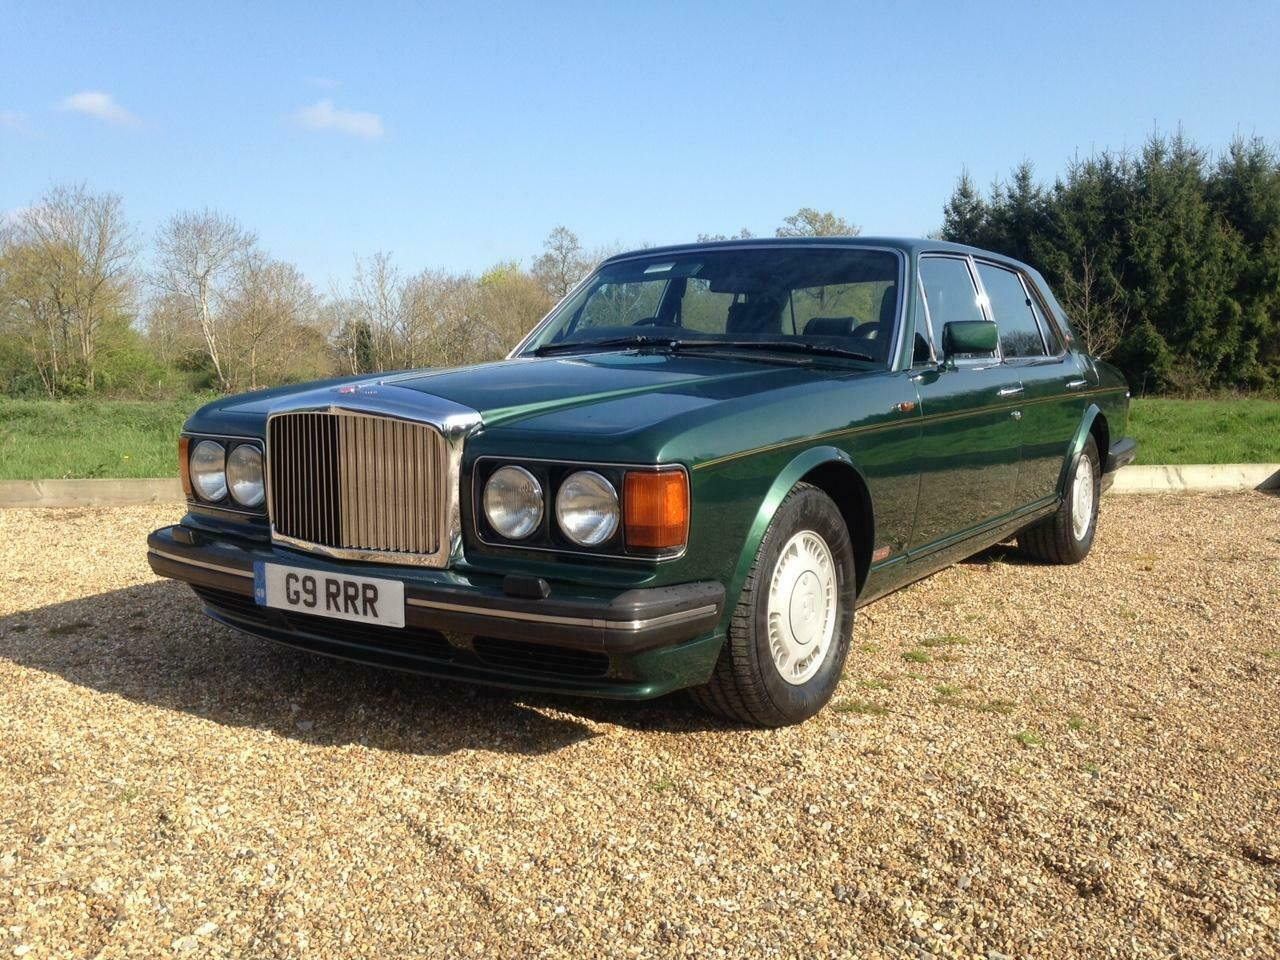 1990 Bentley Turbo R 6.8 auto BRG/Beluga 57k Miles SH Immacu For Sale (picture 1 of 6)